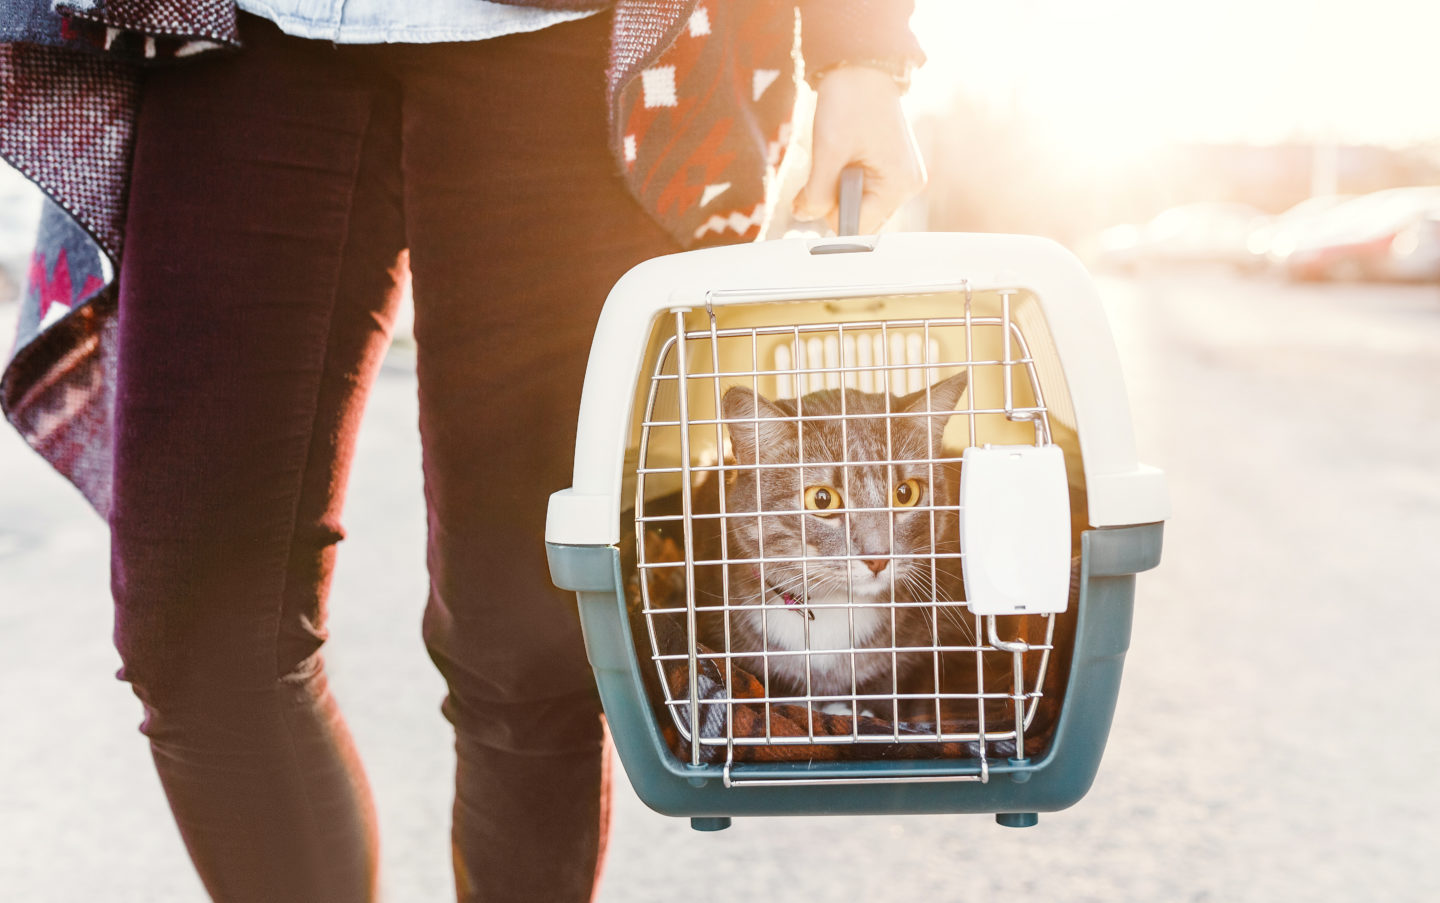 Animals could suffer as welfare charities impacted by Covid-19 9